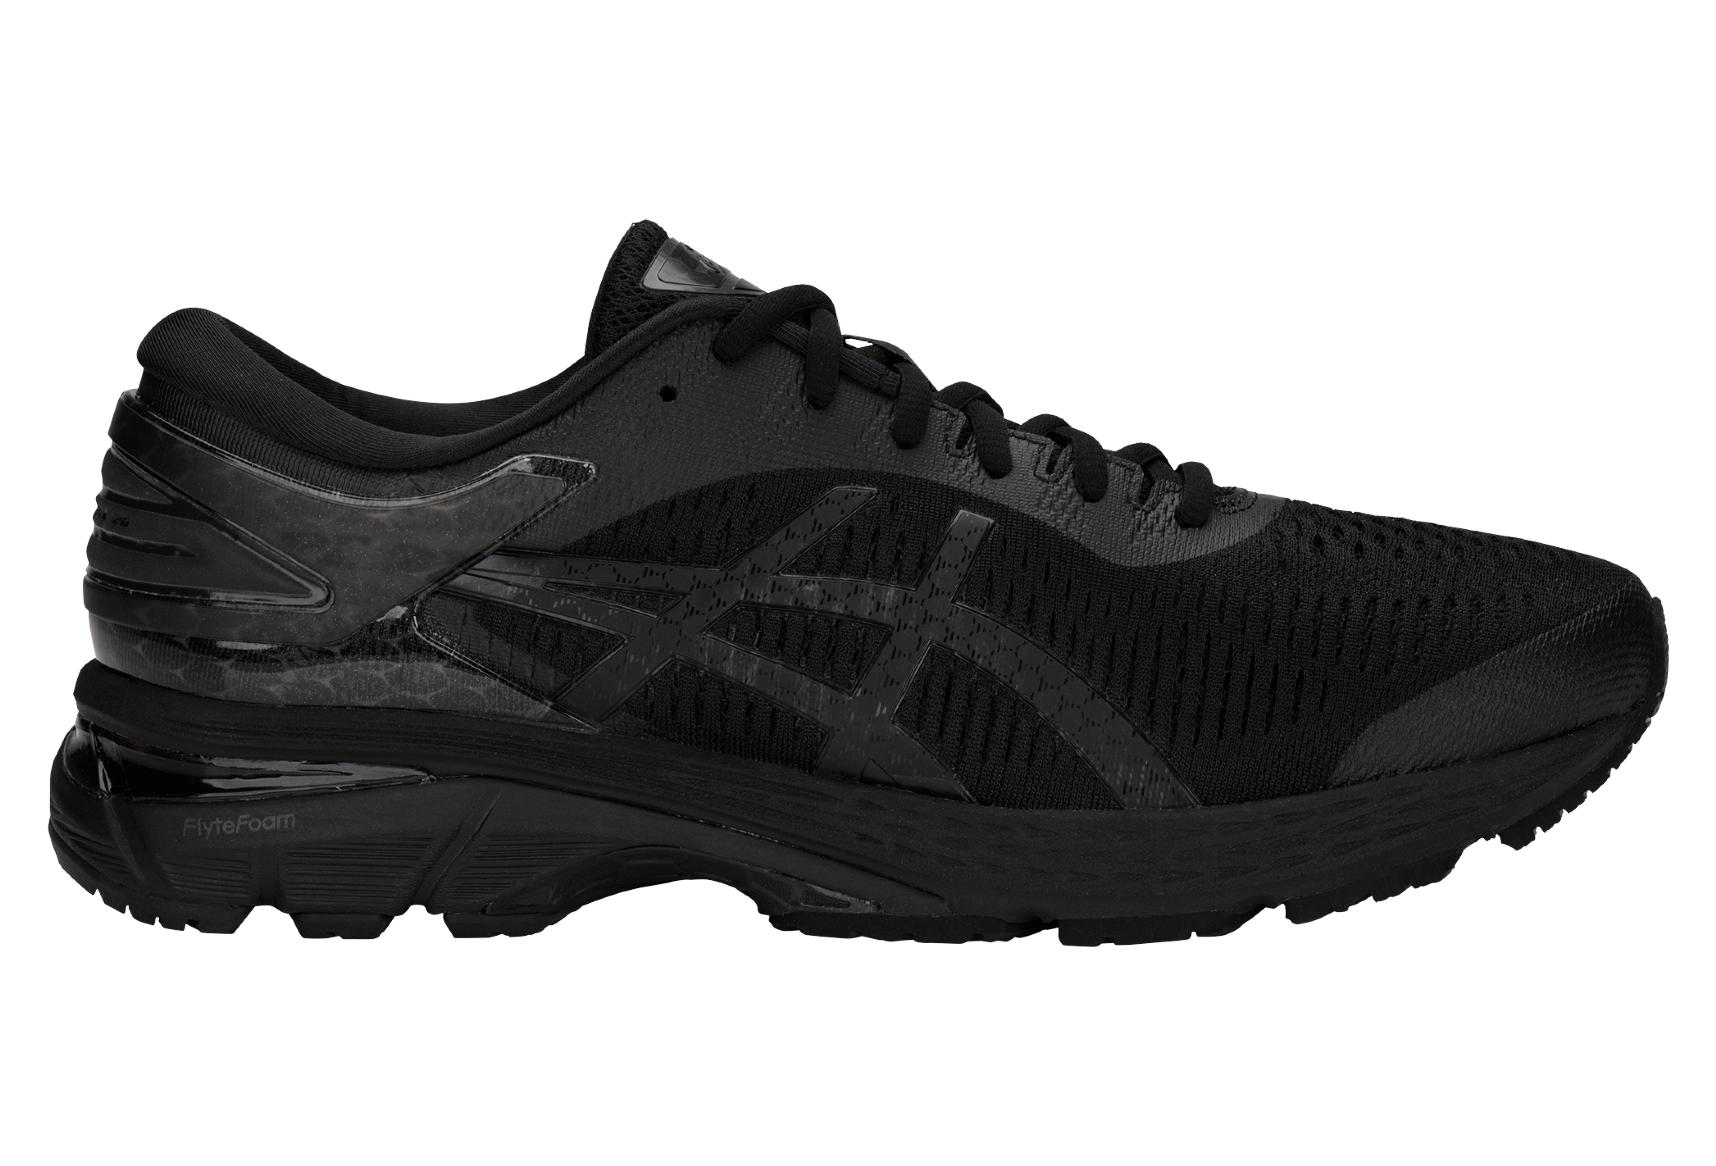 3f8c8257cc76 Scarpe da Running Asics Gel-Kayano 25 Nero | Alltricks.it